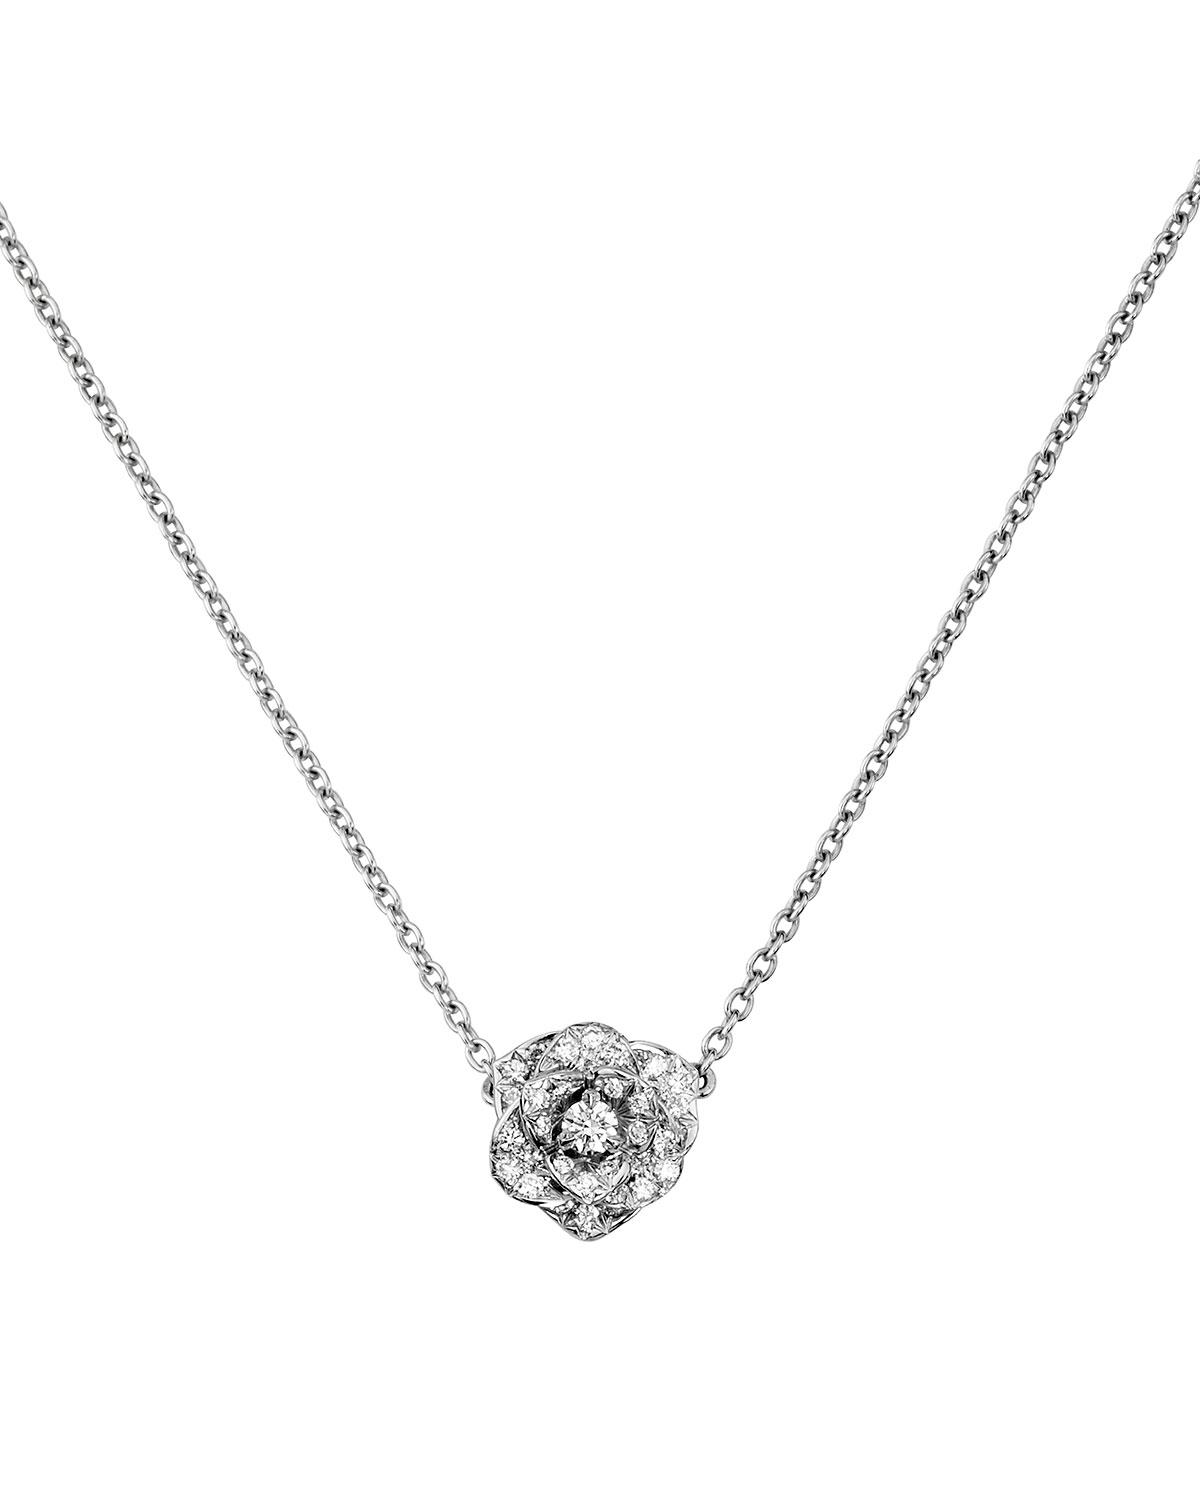 Piaget diamond rose pendant necklace in 18k white gold neiman marcus diamond rose pendant necklace in 18k white gold aloadofball Image collections